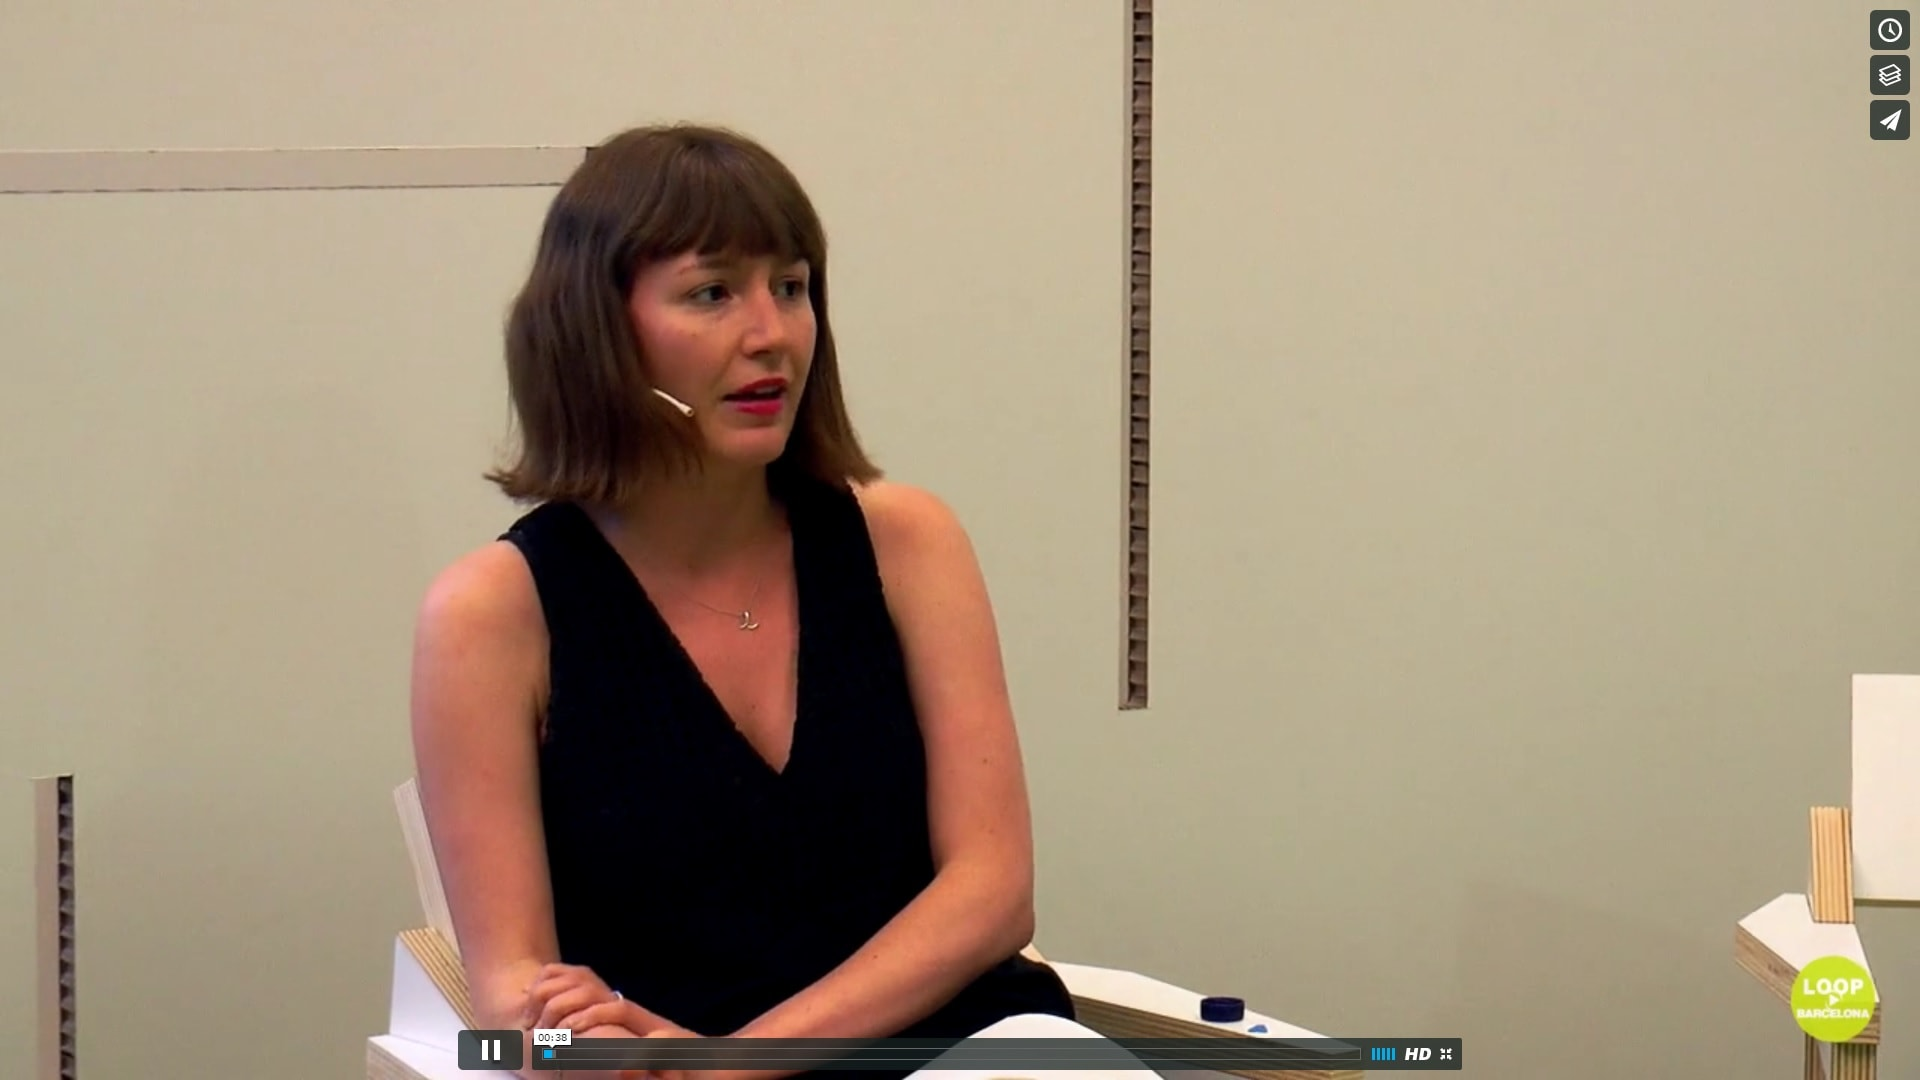 'Editioning the Moving Image: Old Problems and New Possibilities' – A talk by Erika Balsom